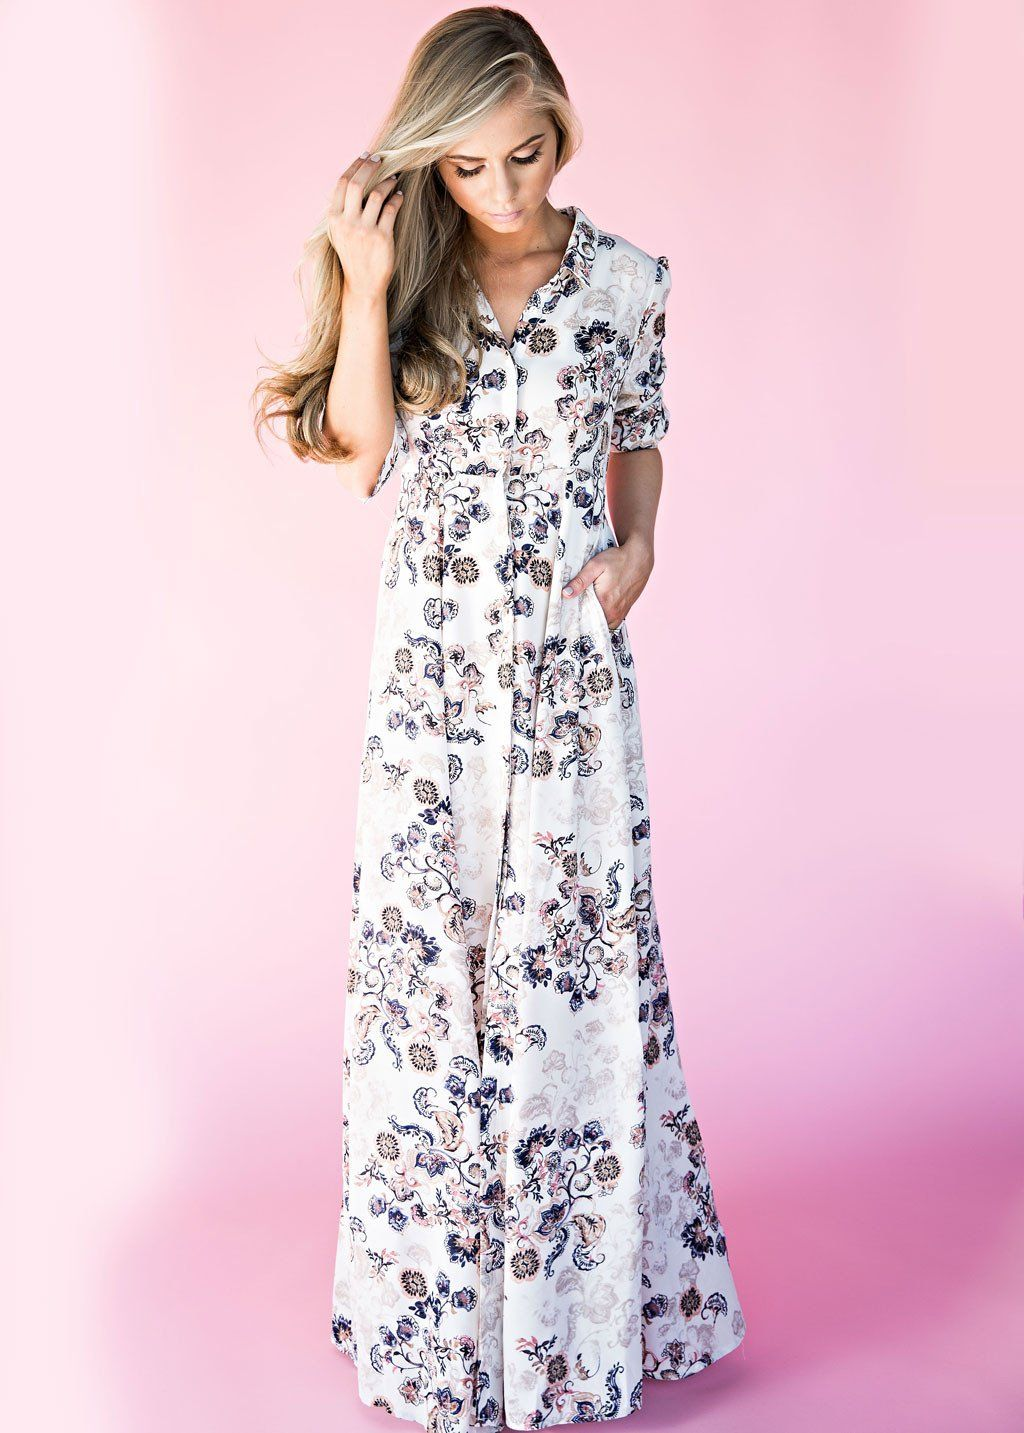 Paisley Button Down Maxi Dress   Clothing   Pinterest   Outfits ...